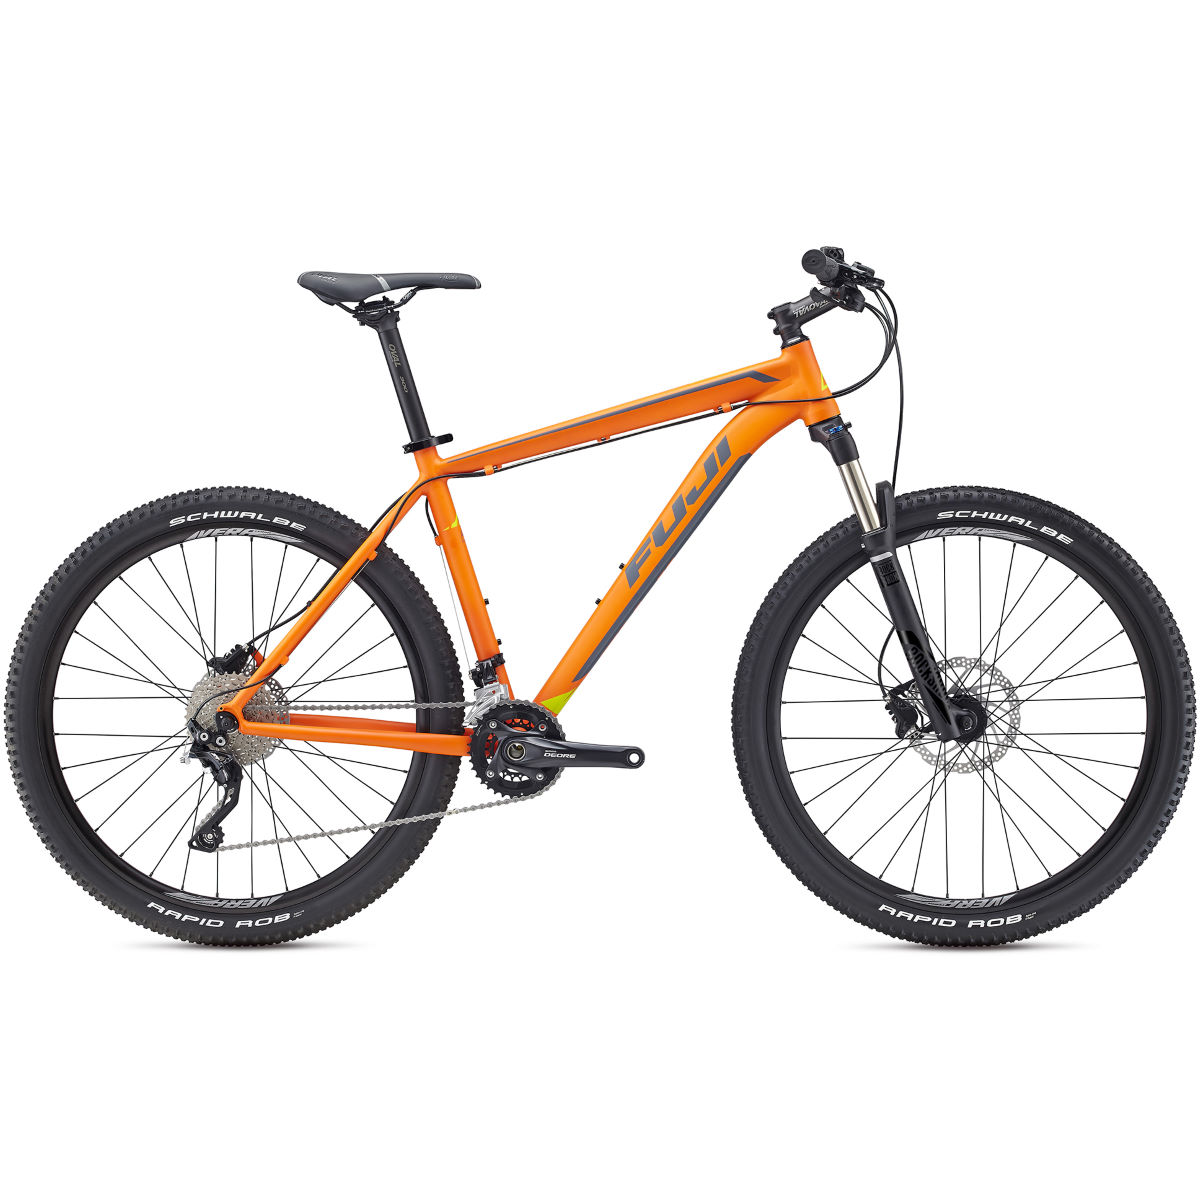 VTT semi-rigide Fuji Tahoe 27,5 pouces 1.5 (2017) - Orange/Gray